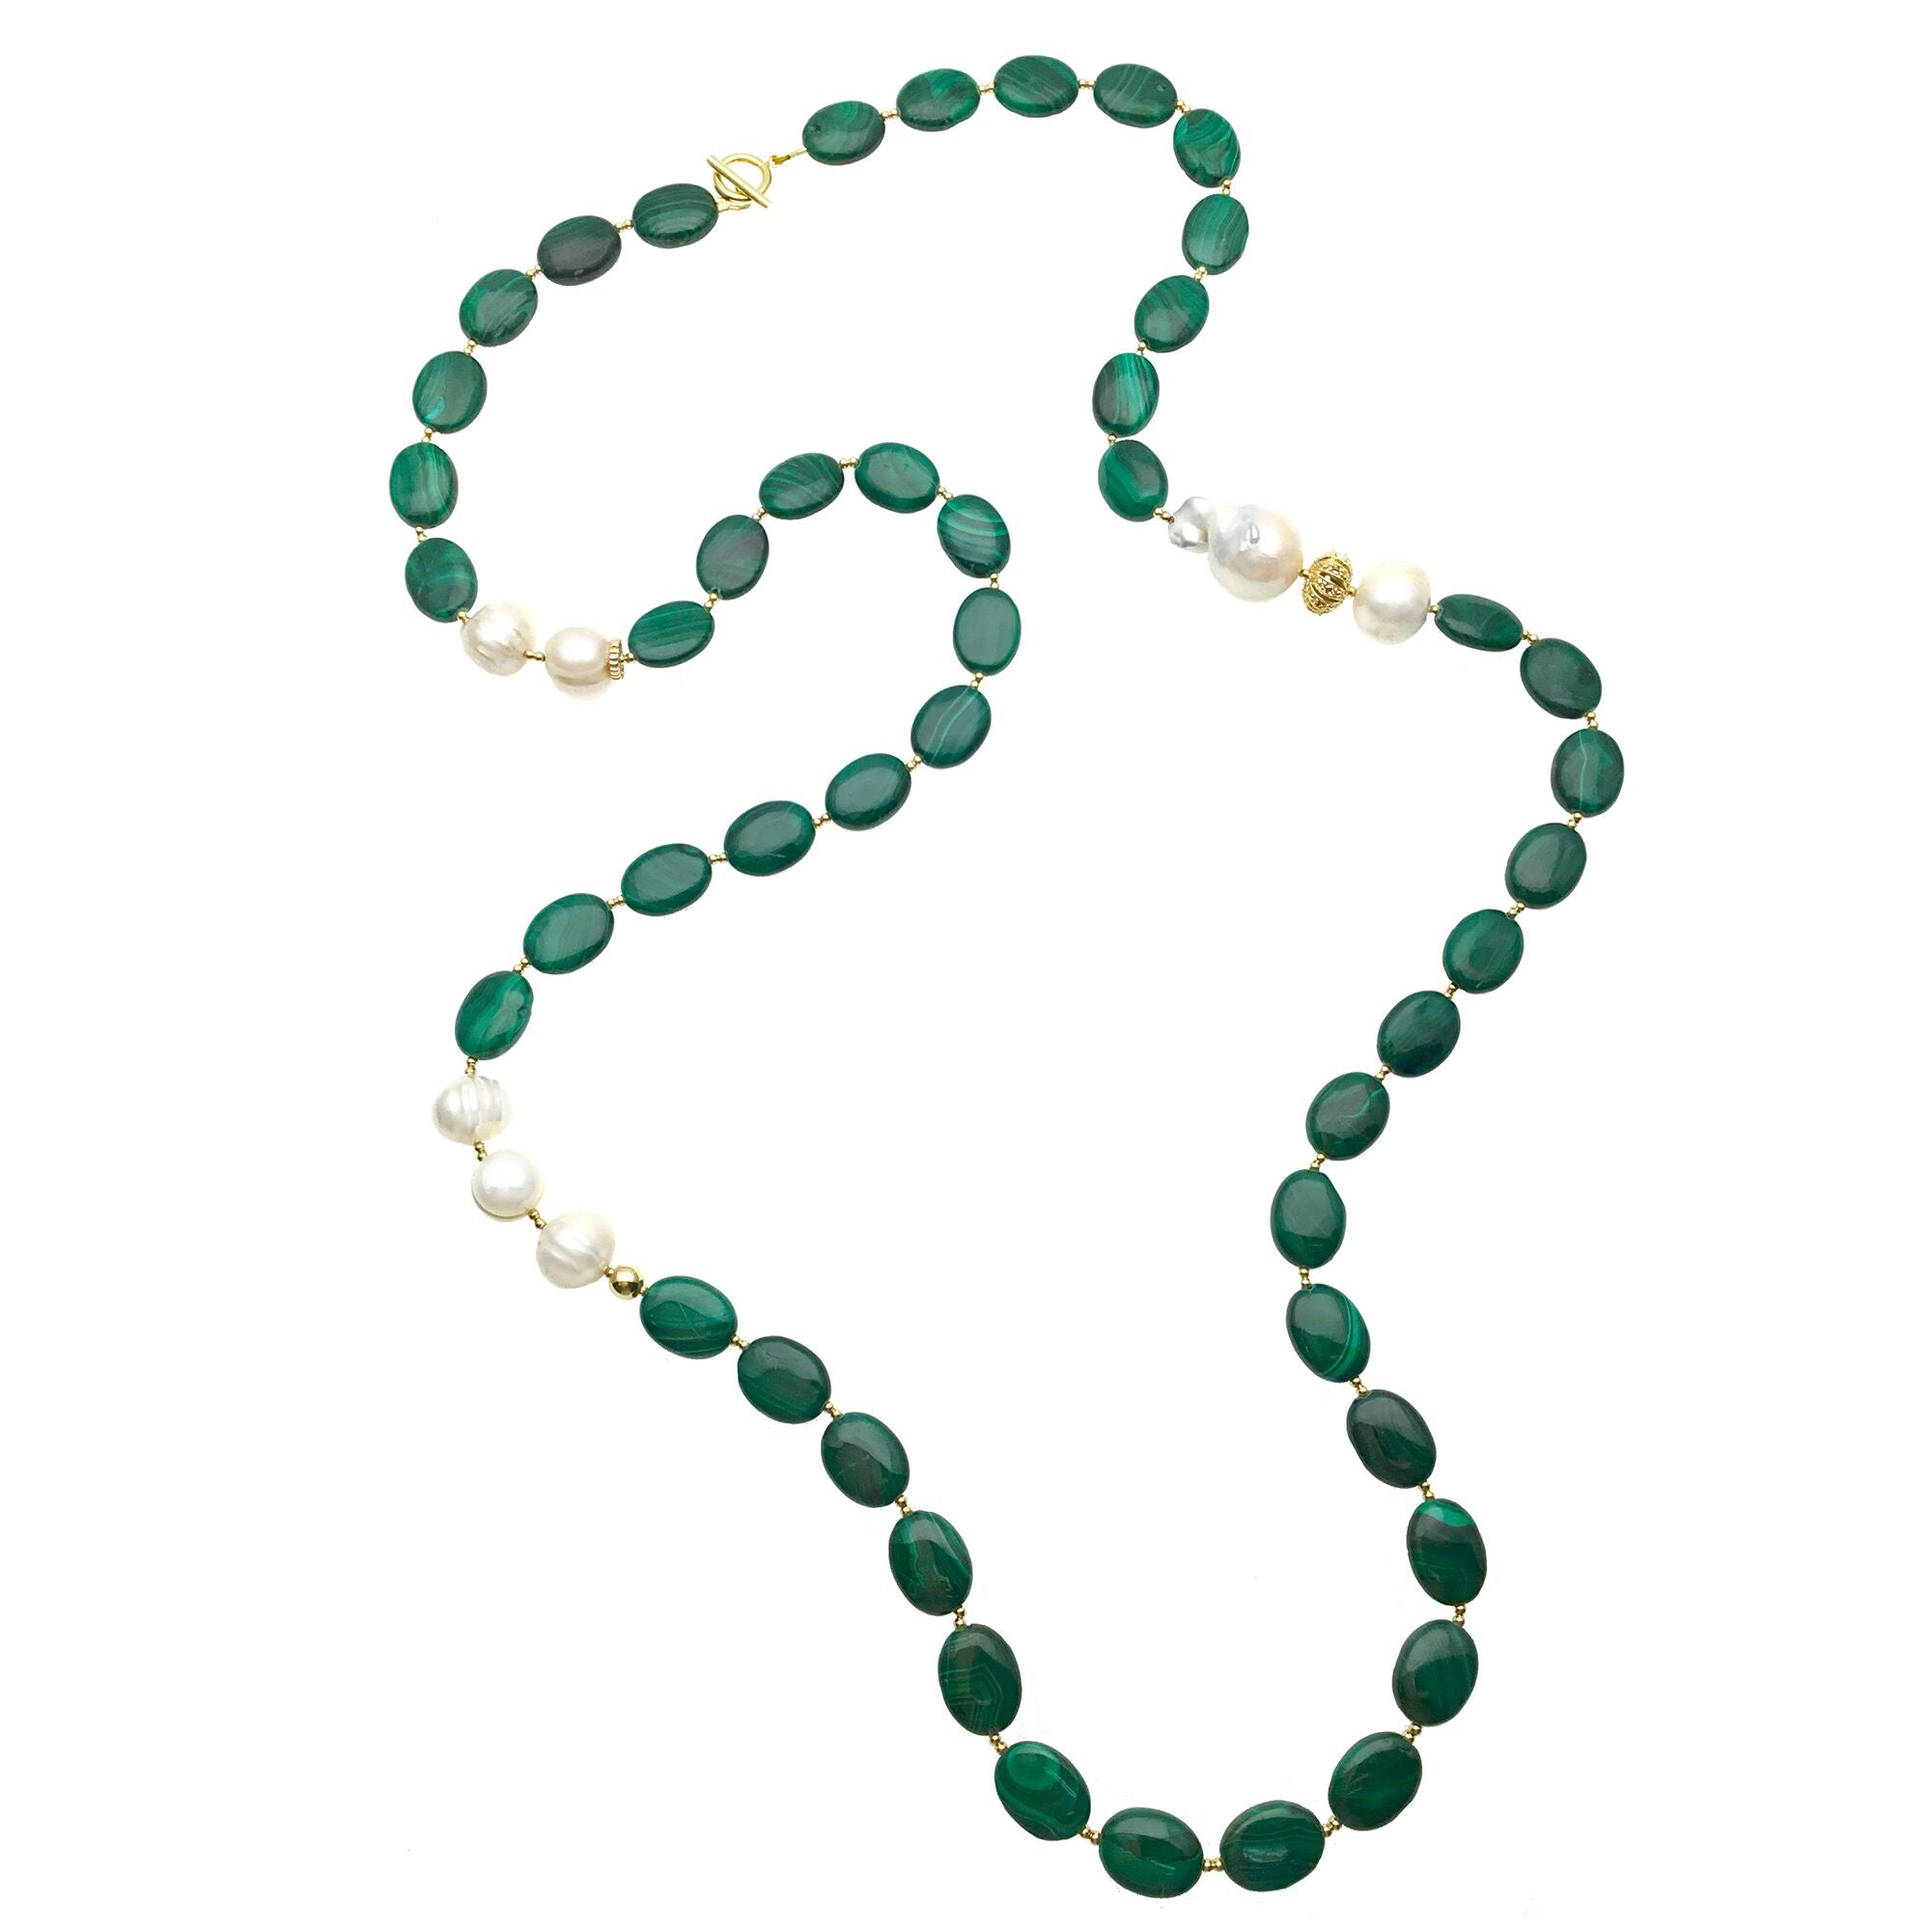 Long Baroque Pearl and Malachite Necklace - Shopidpearl